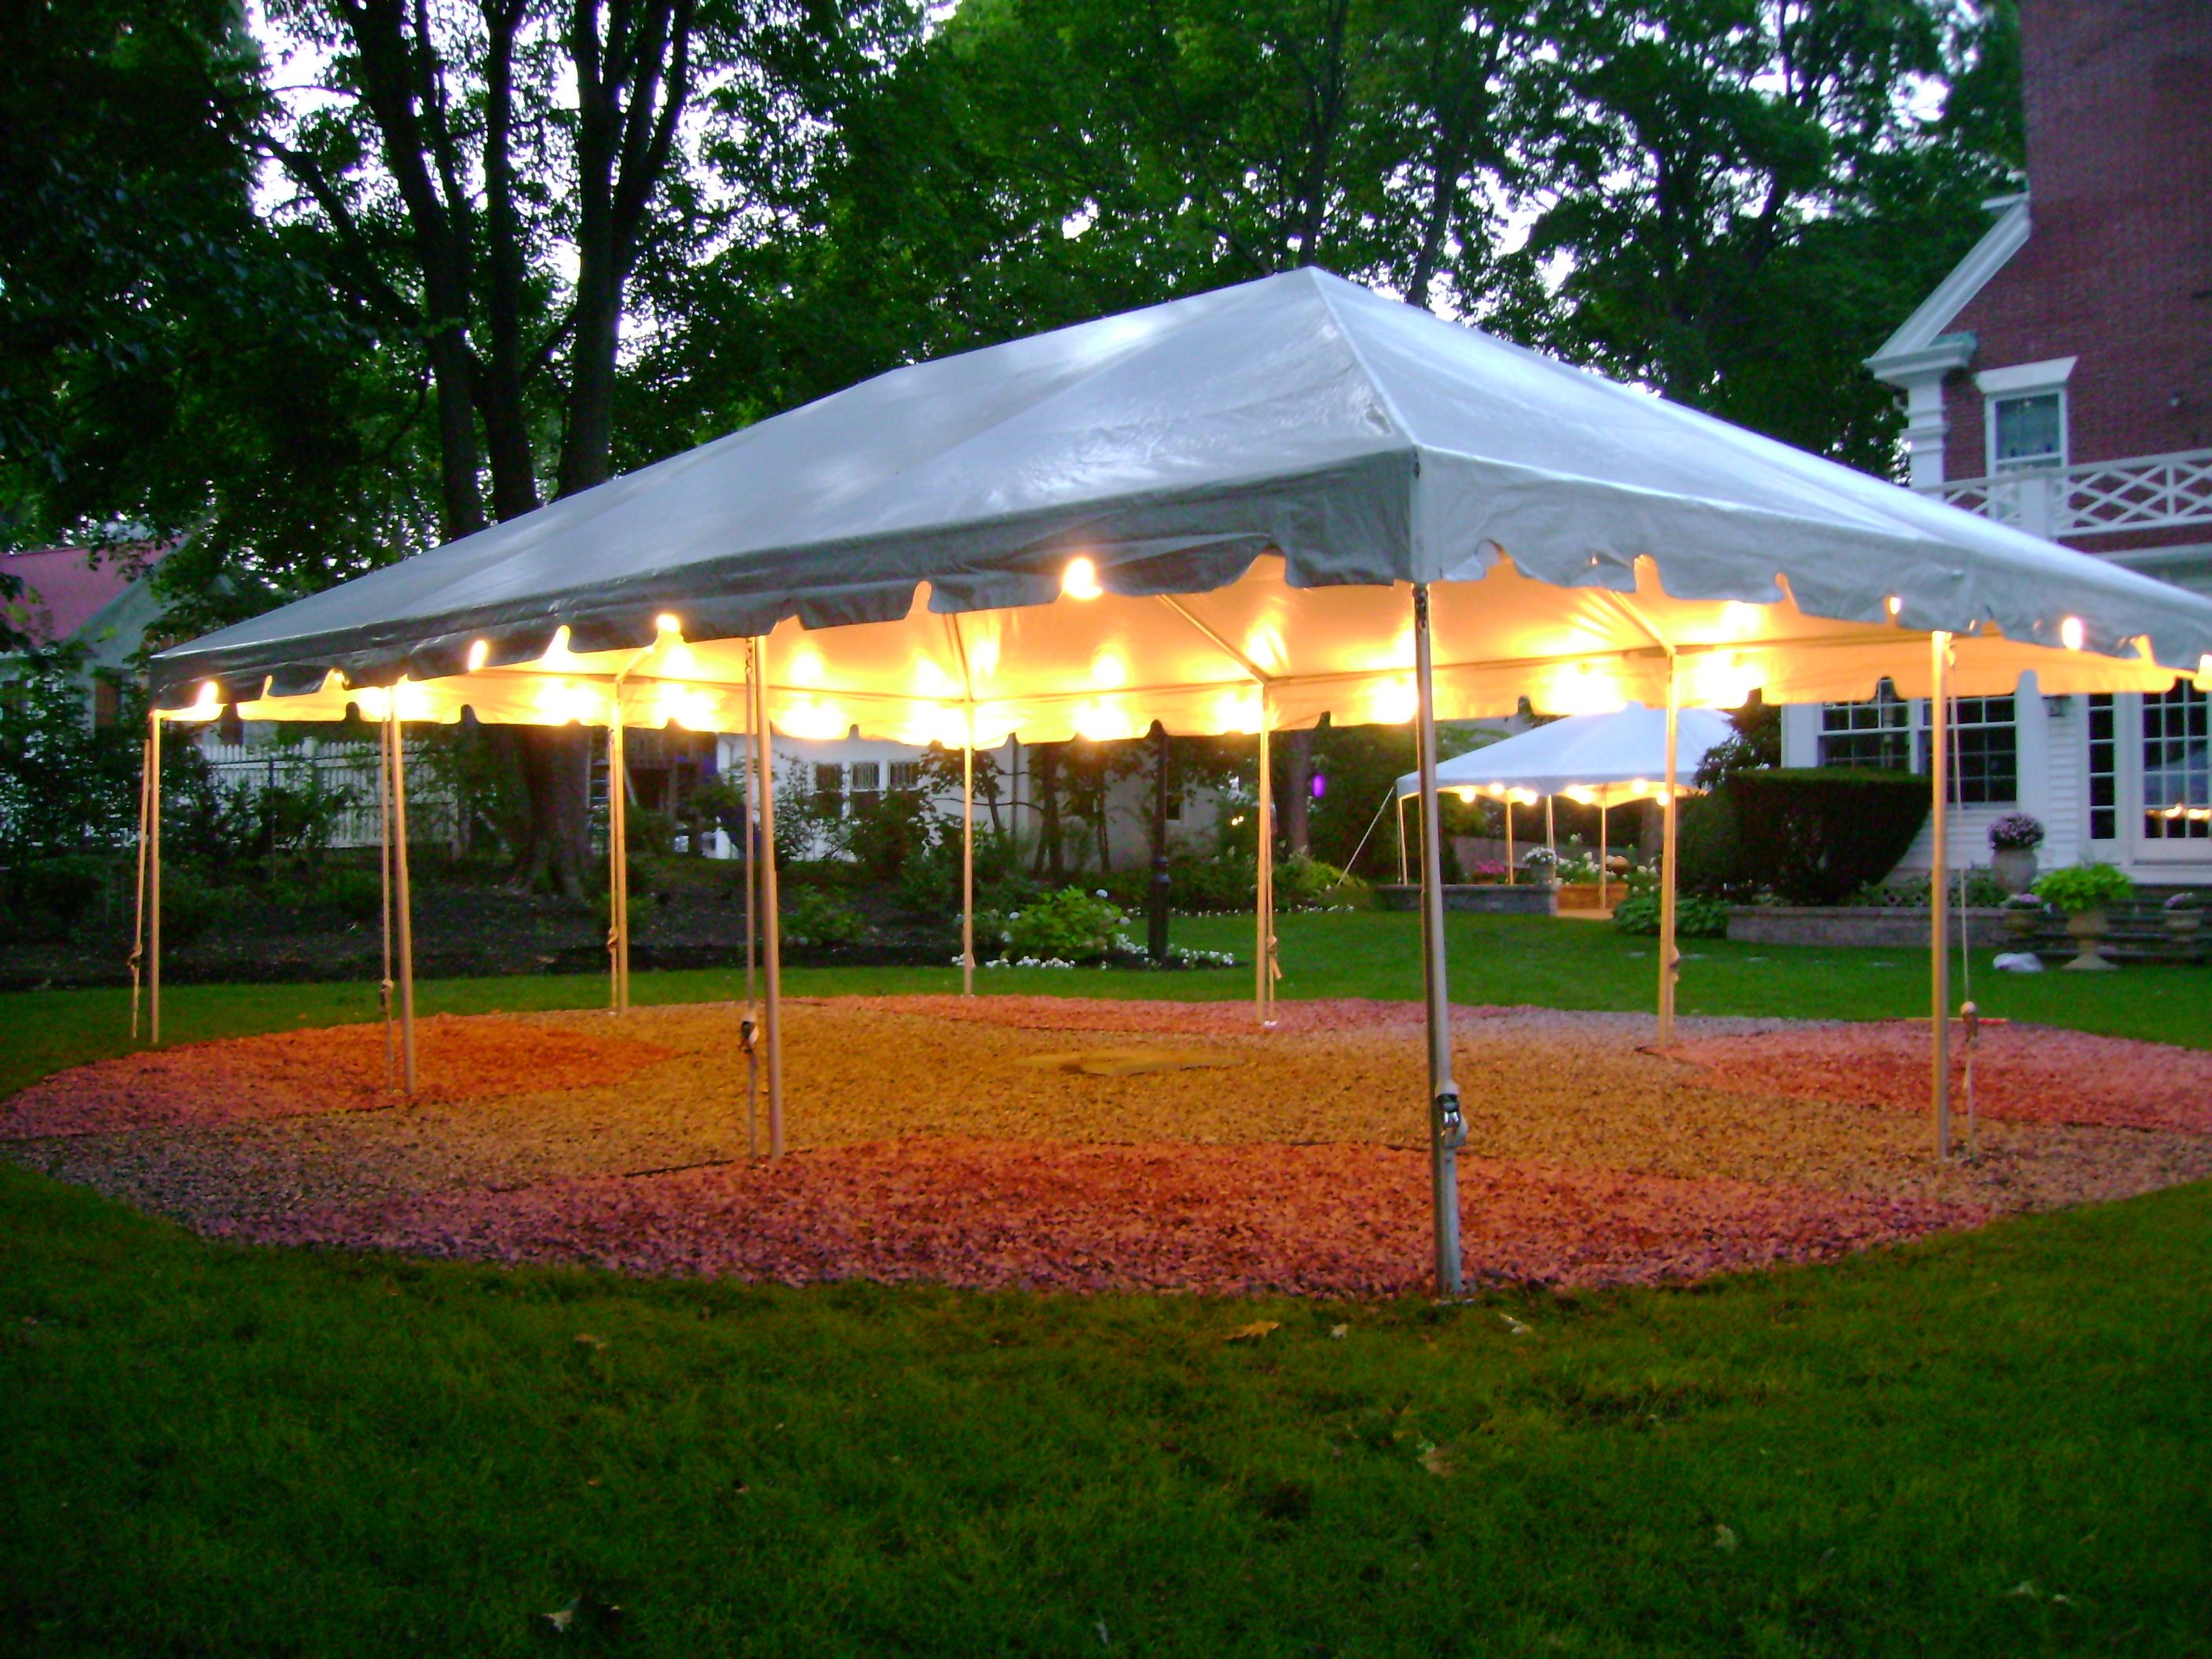 If you want to have a nice event with a lot of guests why not rent a tent? & washingtondc #eventrentalsdc #tentrental #explorewashington ...